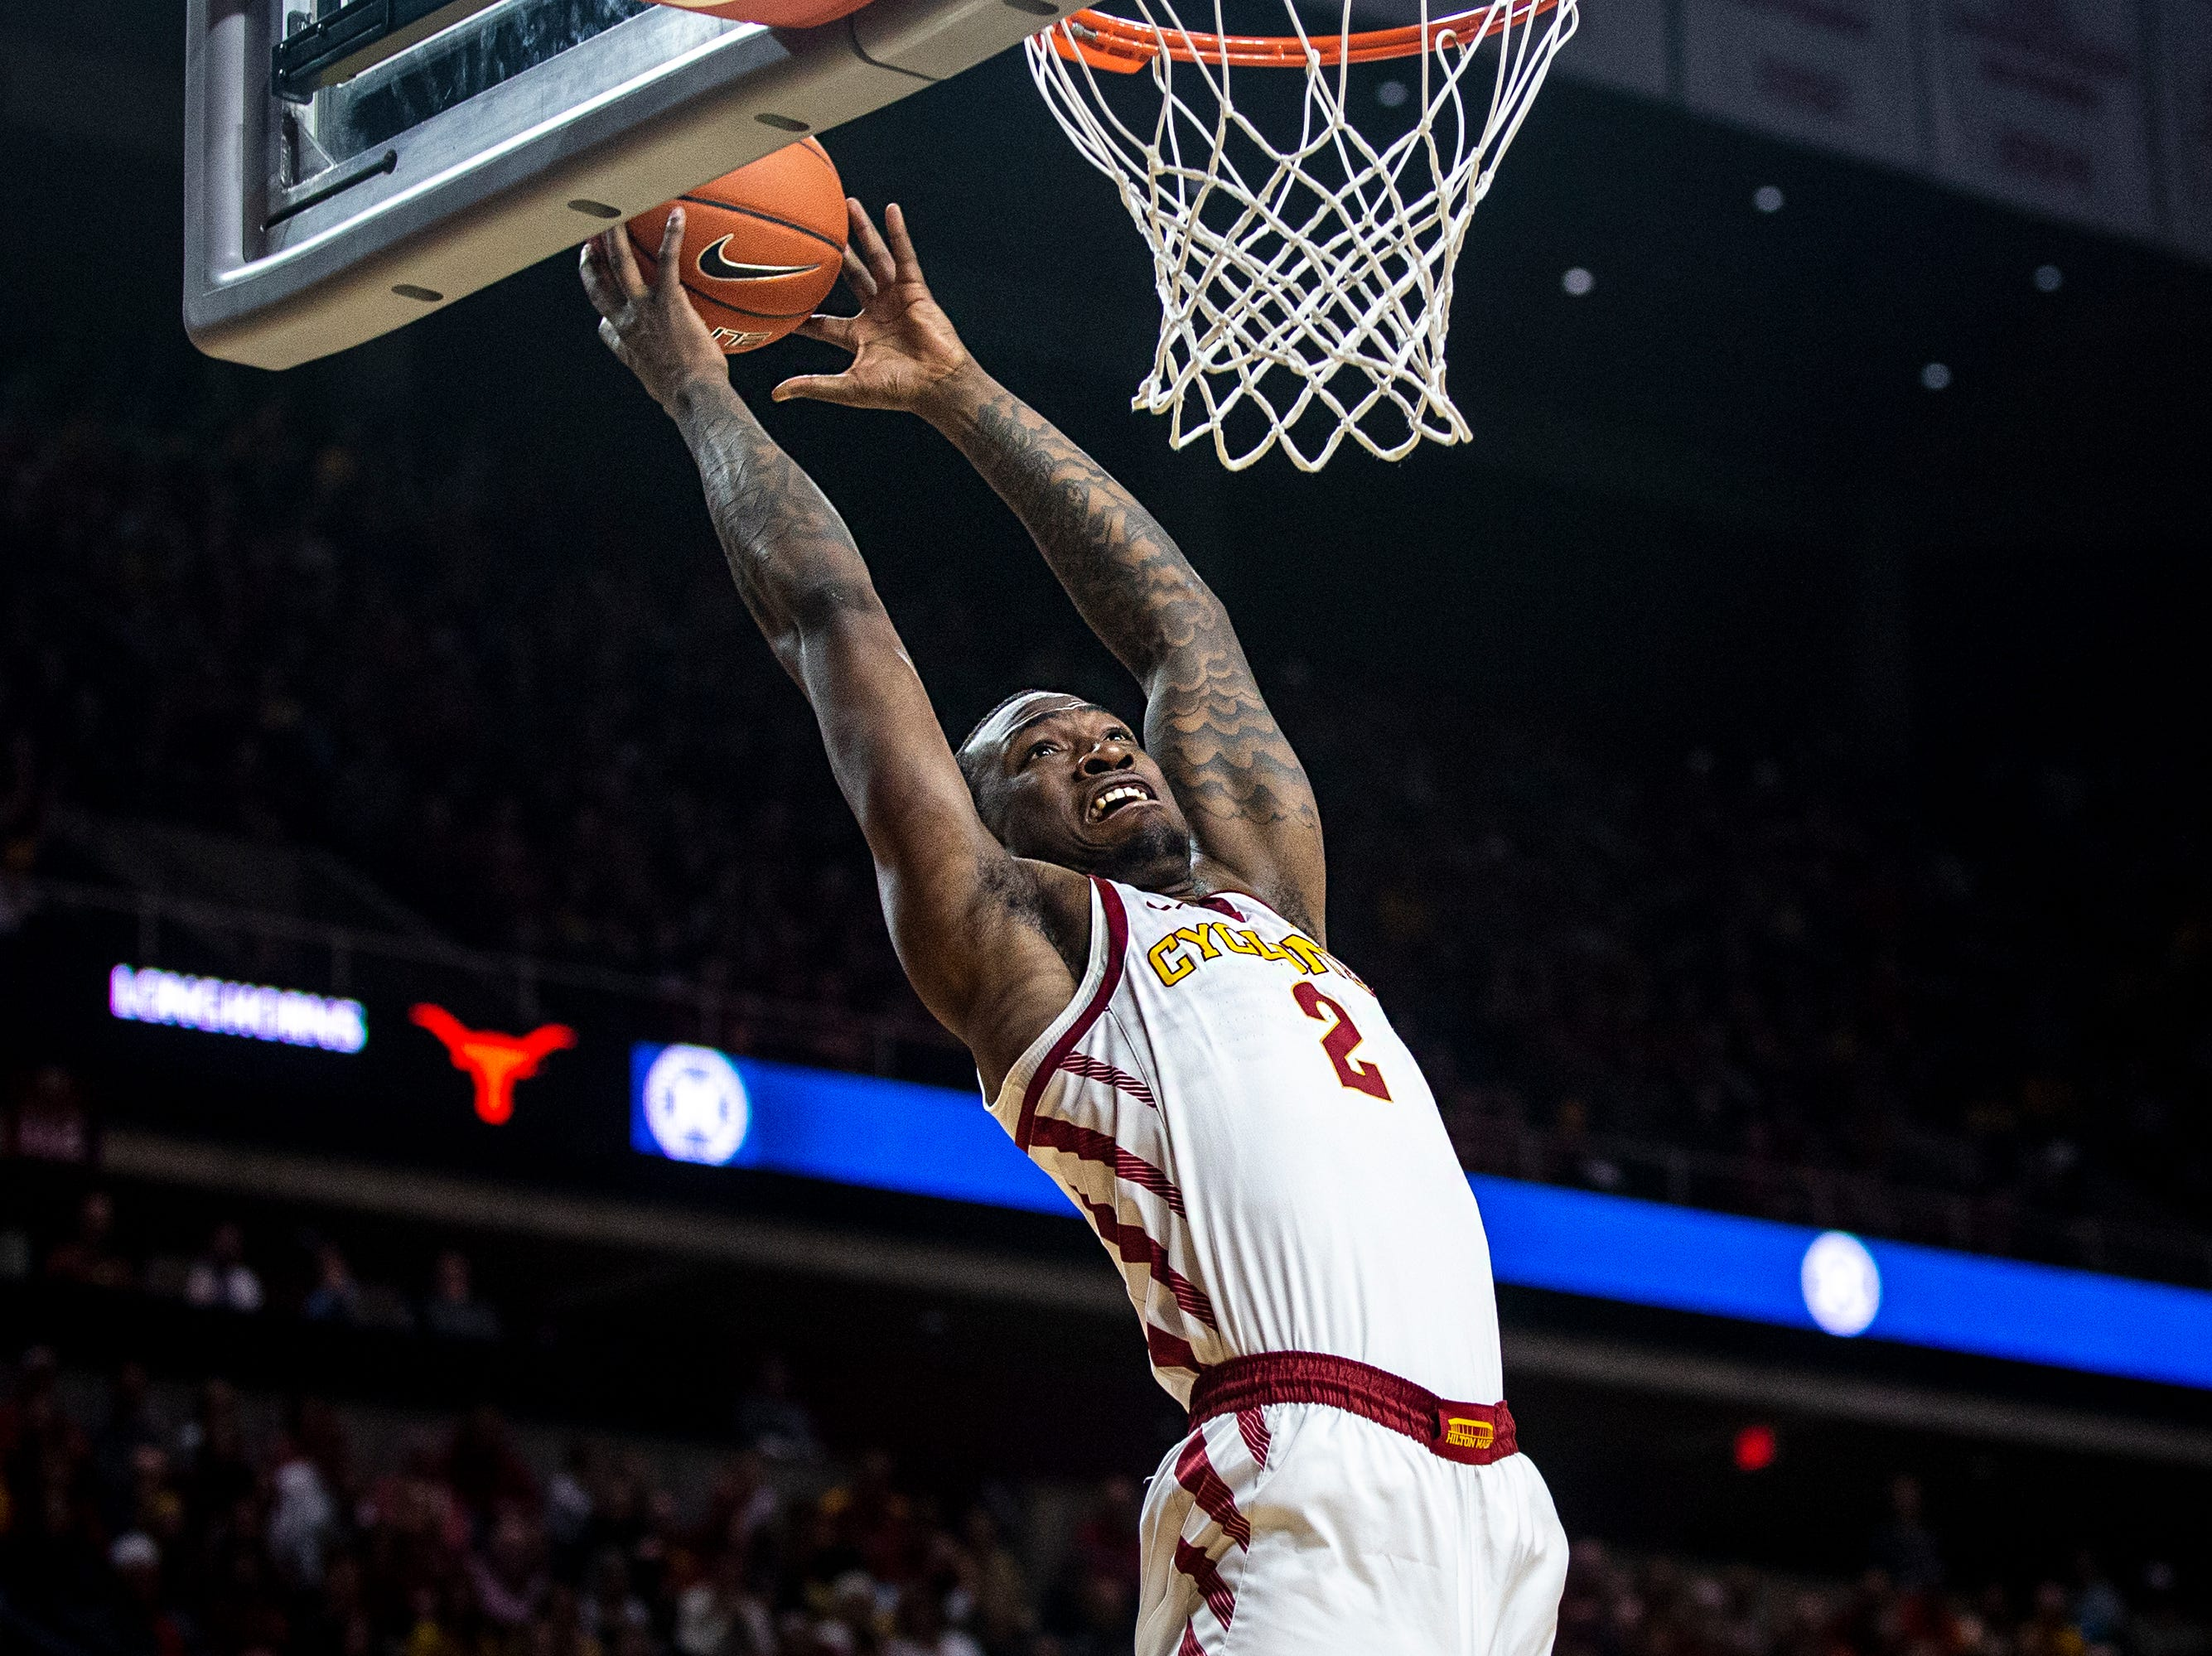 Iowa State's Cameron Lard attempts to score during the Iowa State men's basketball game against Texas on Saturday, Feb. 2, 2019, in Hilton Coliseum.